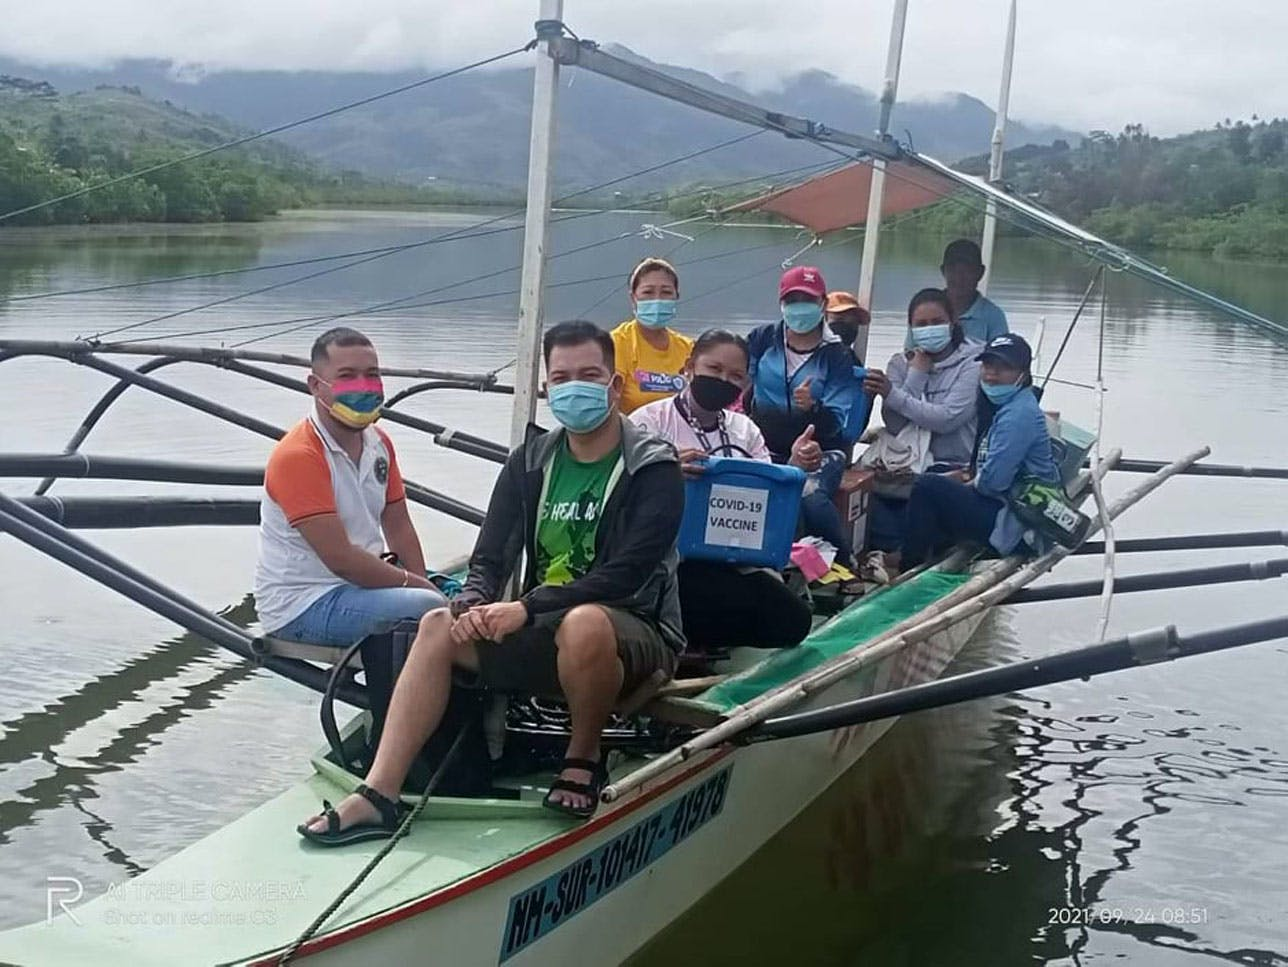 Filipino Barrio Doctors Scale Mountains, Cross Rivers And Seas To Deliver COVID-19 Vaccines